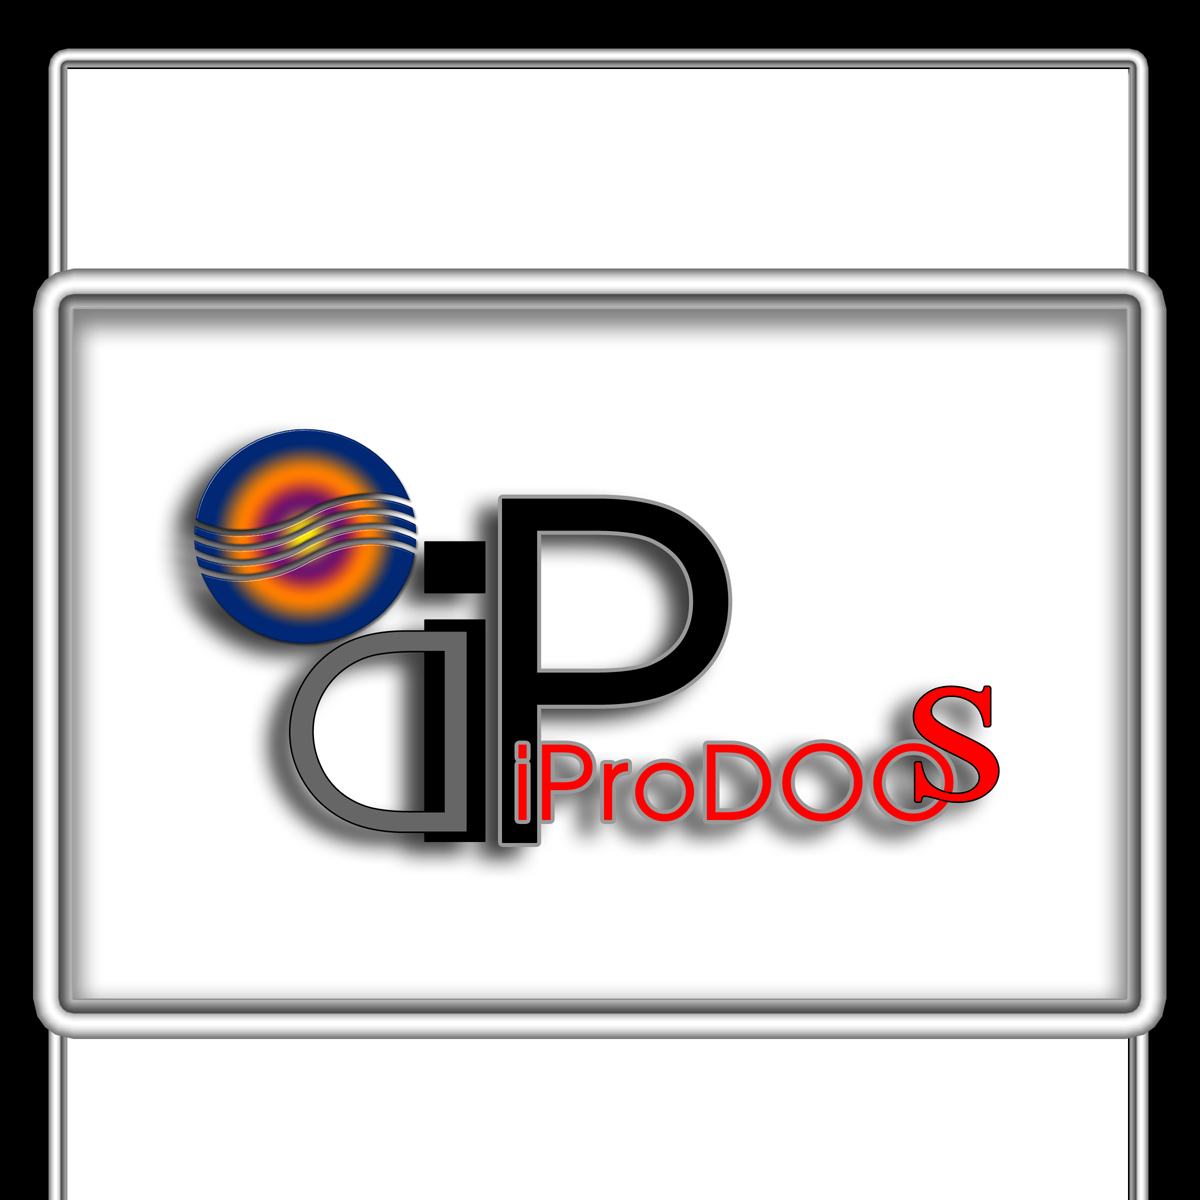 Logo Design by MITUCA ANDREI - Entry No. 51 in the Logo Design Contest New Logo Design for iProdoos.